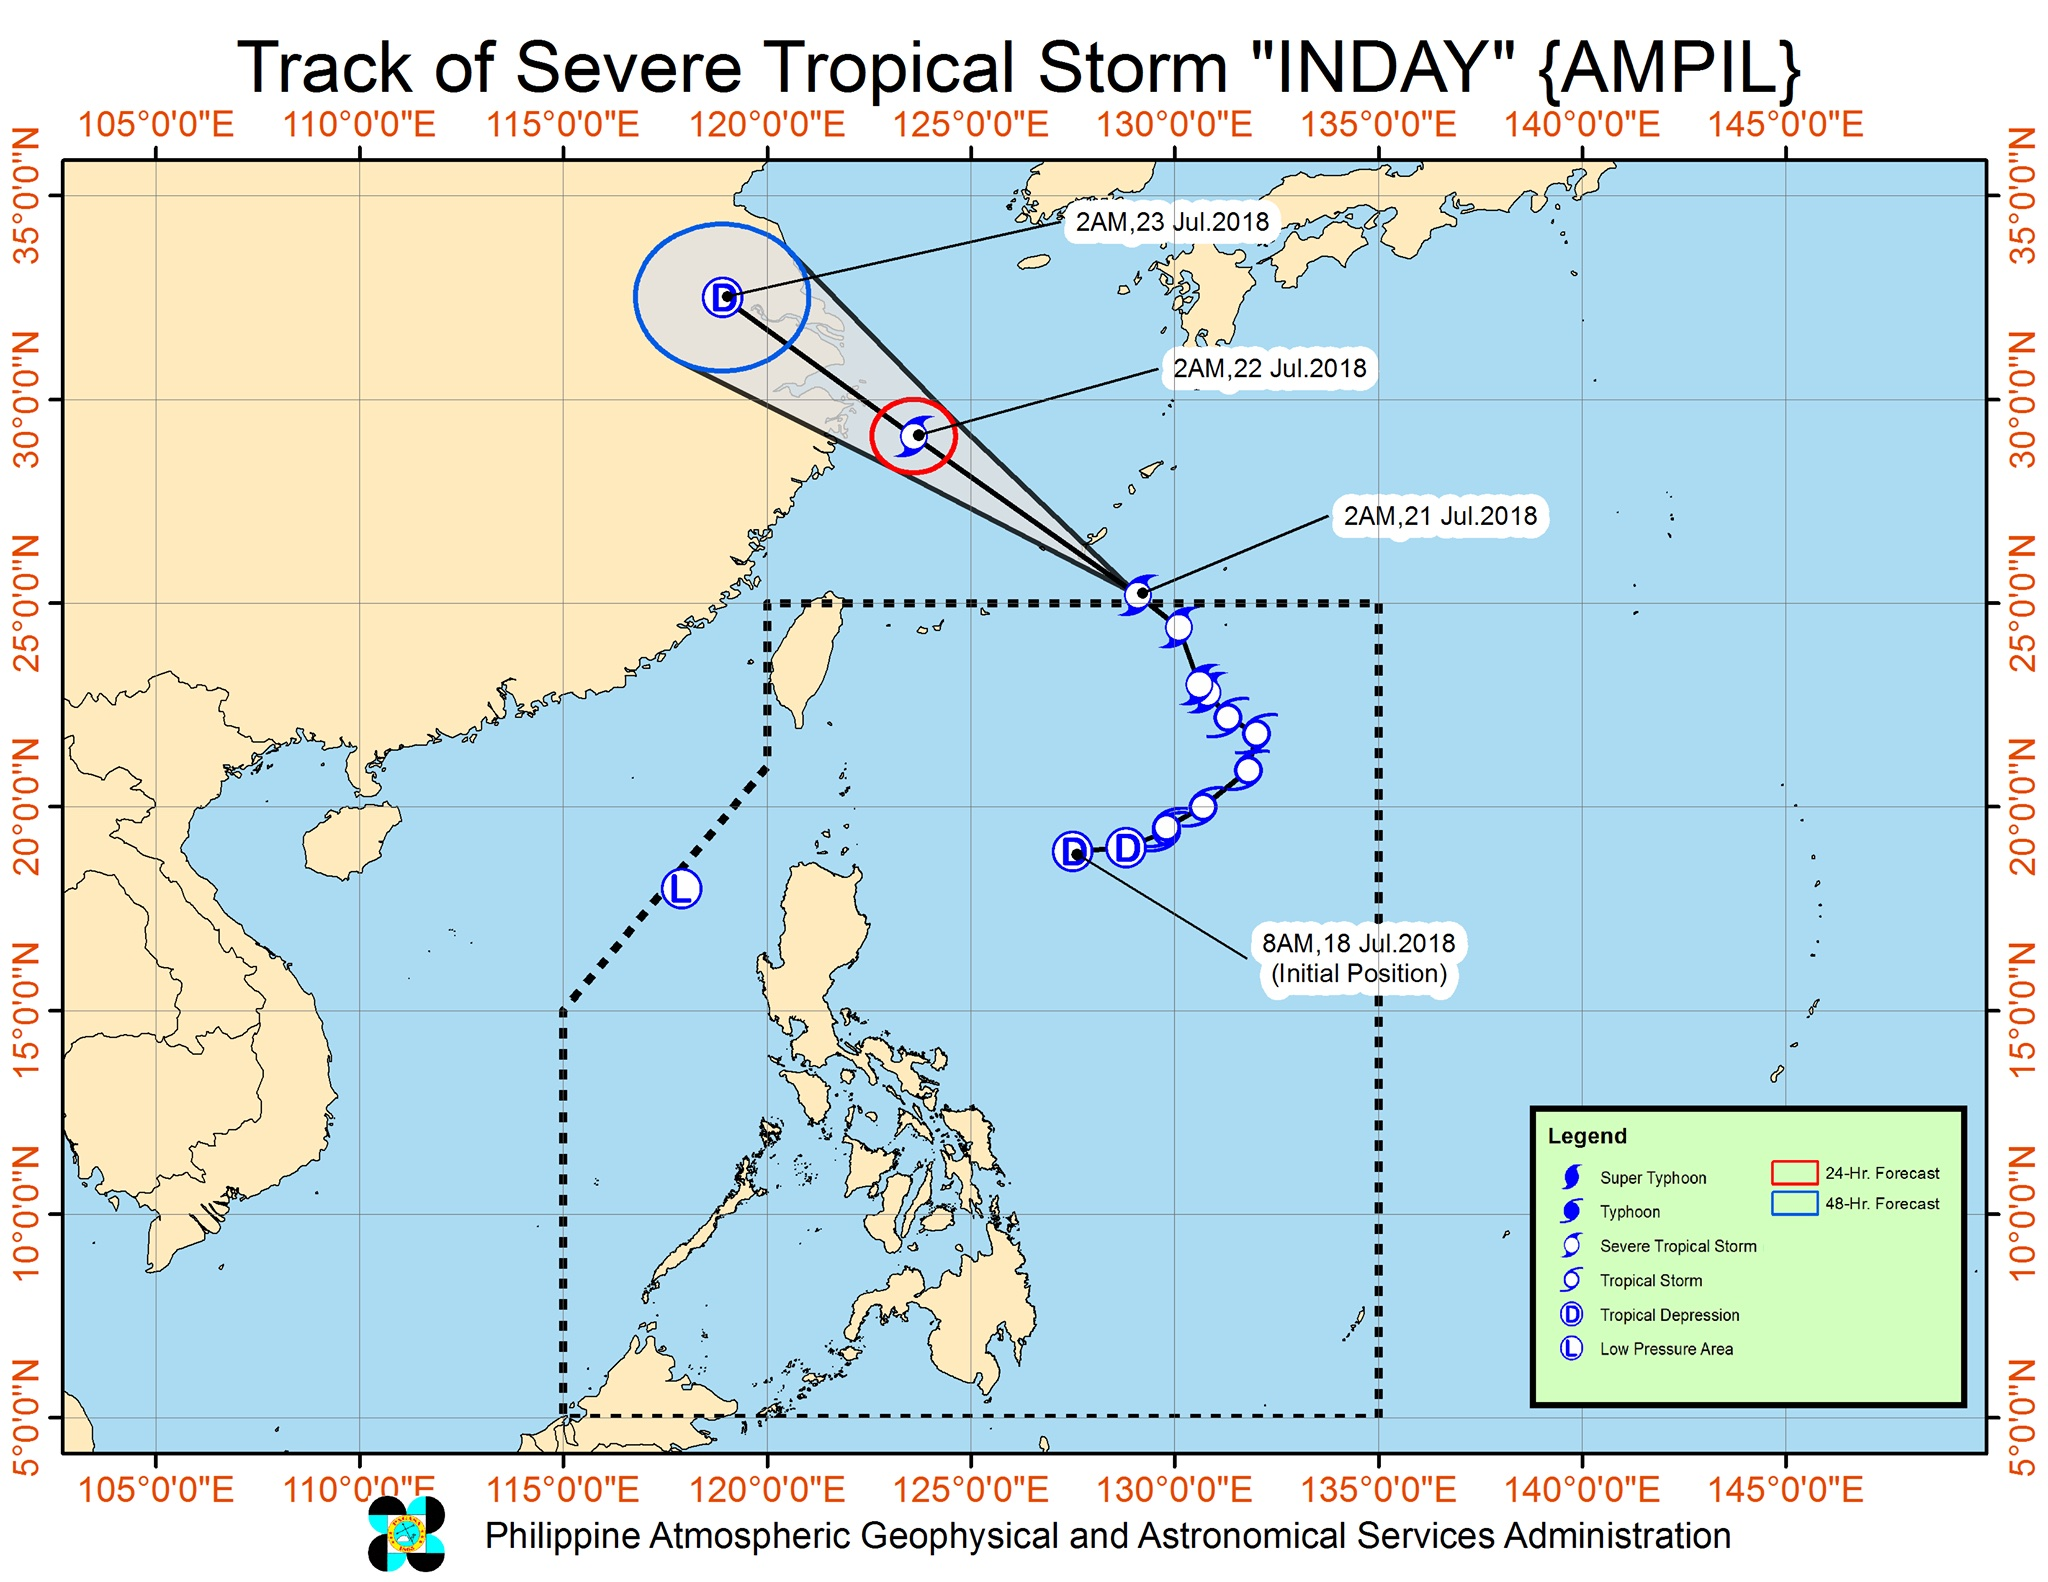 Forecast track of Severe Tropical Storm Inday (Ampil) as of July 21, 2018, 5 am. Image courtesy of PAGASA